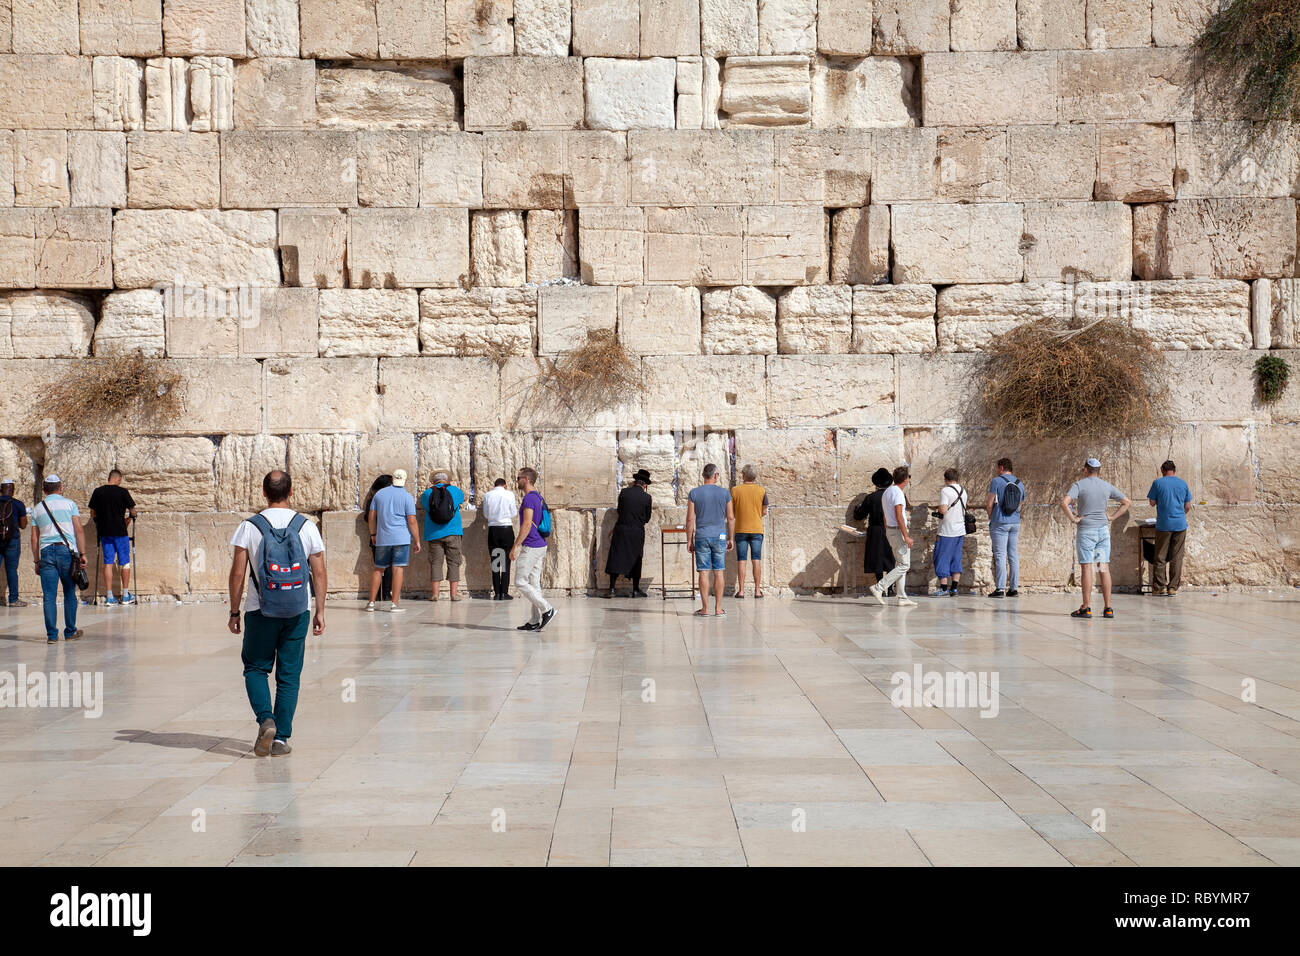 Visitors to The Wailing Wall in Jerusalem Old City - Israel - Stock Image